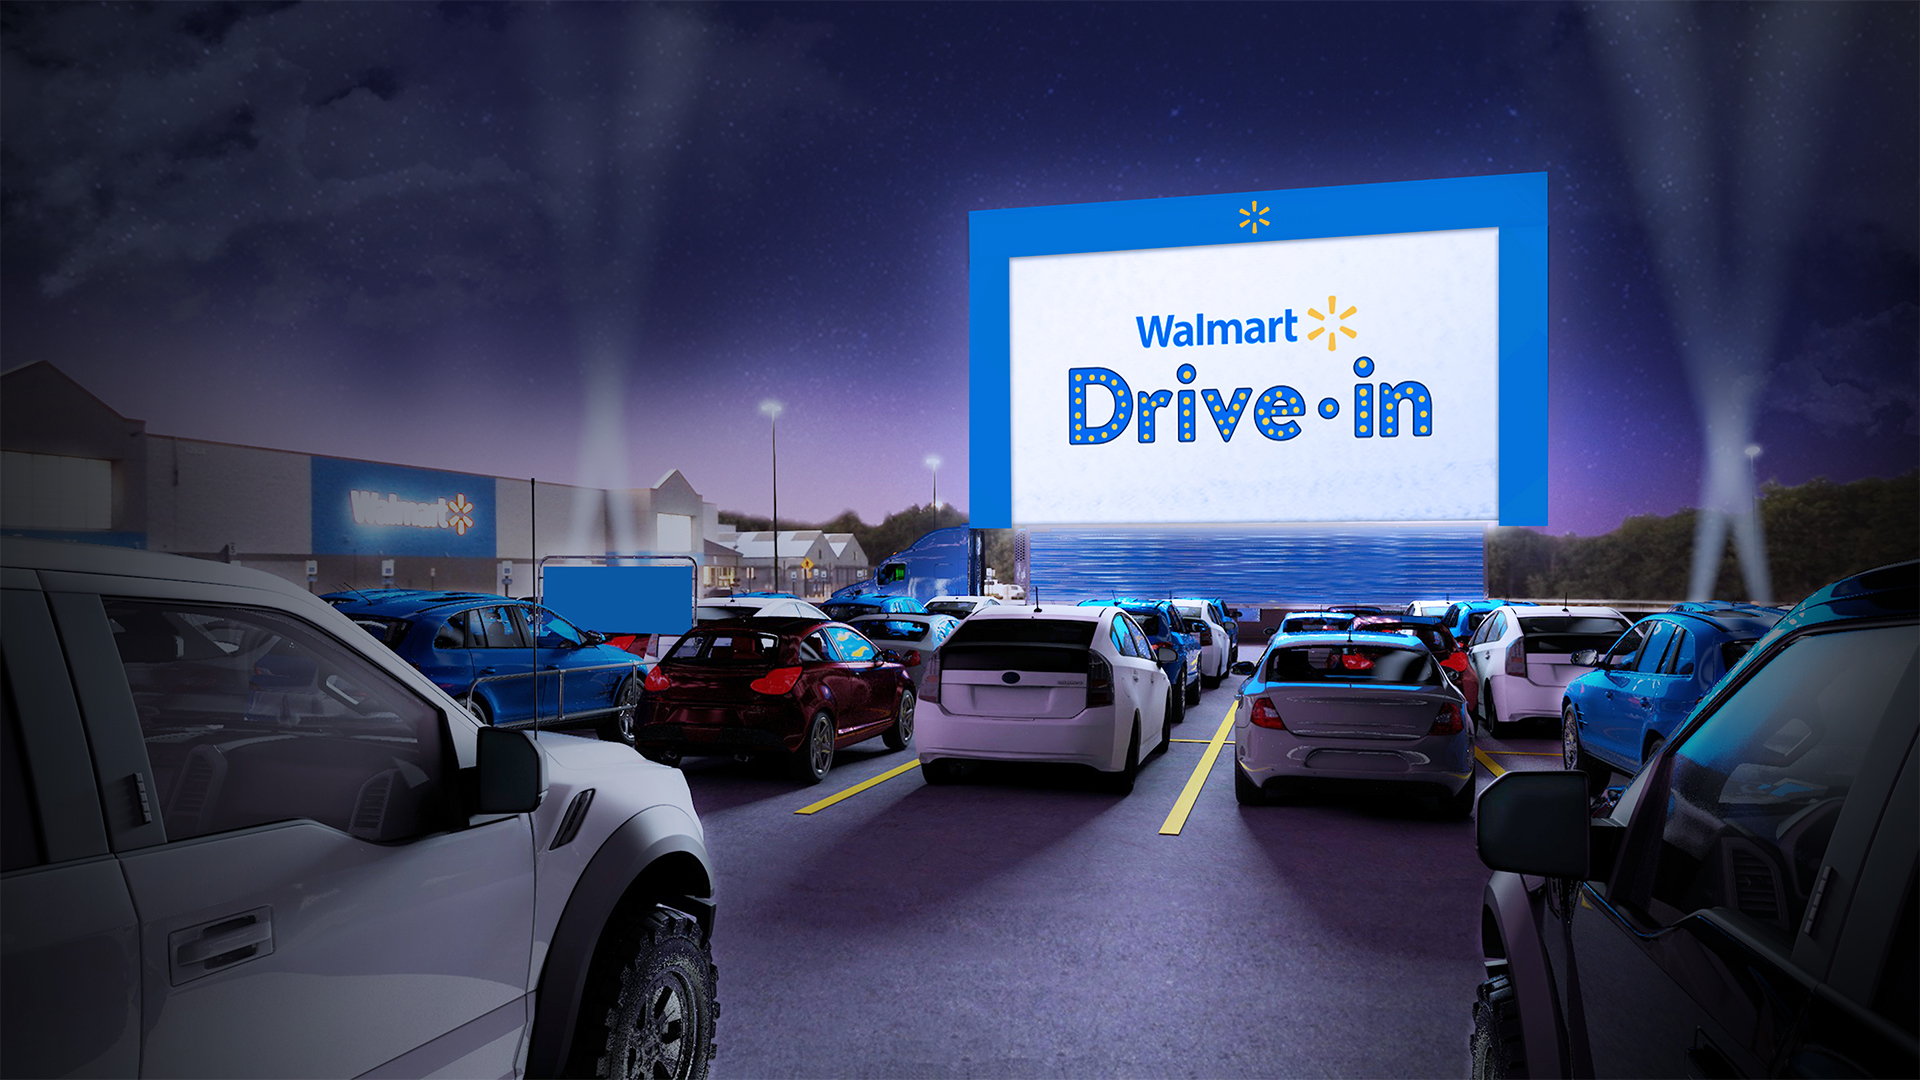 Walmart Drive-in Theater